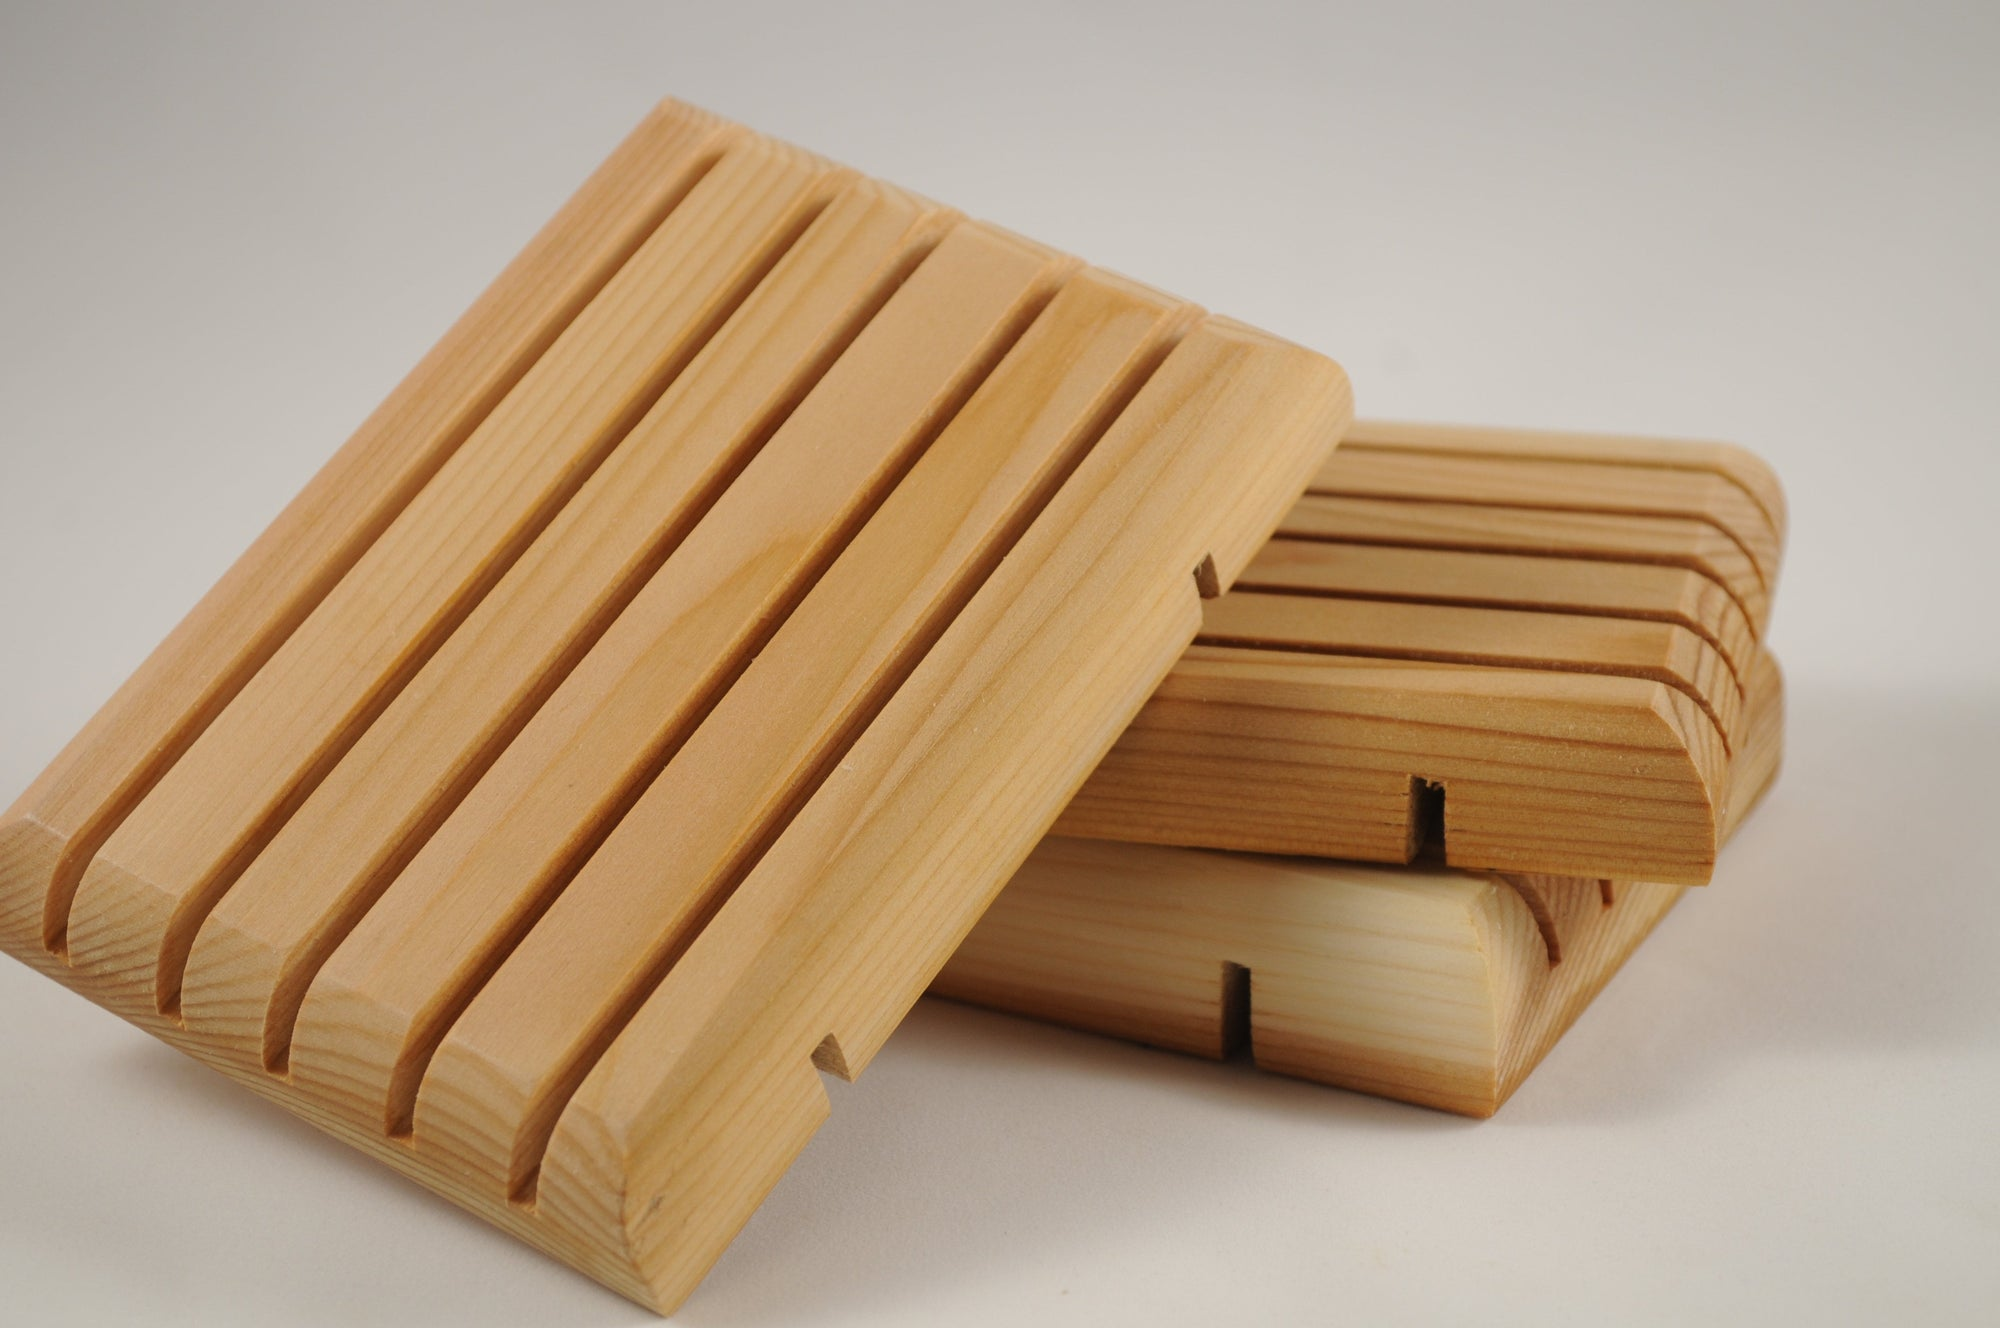 premium quality handcrafted water resistant cedar soap dishes sealed with butcher block oil